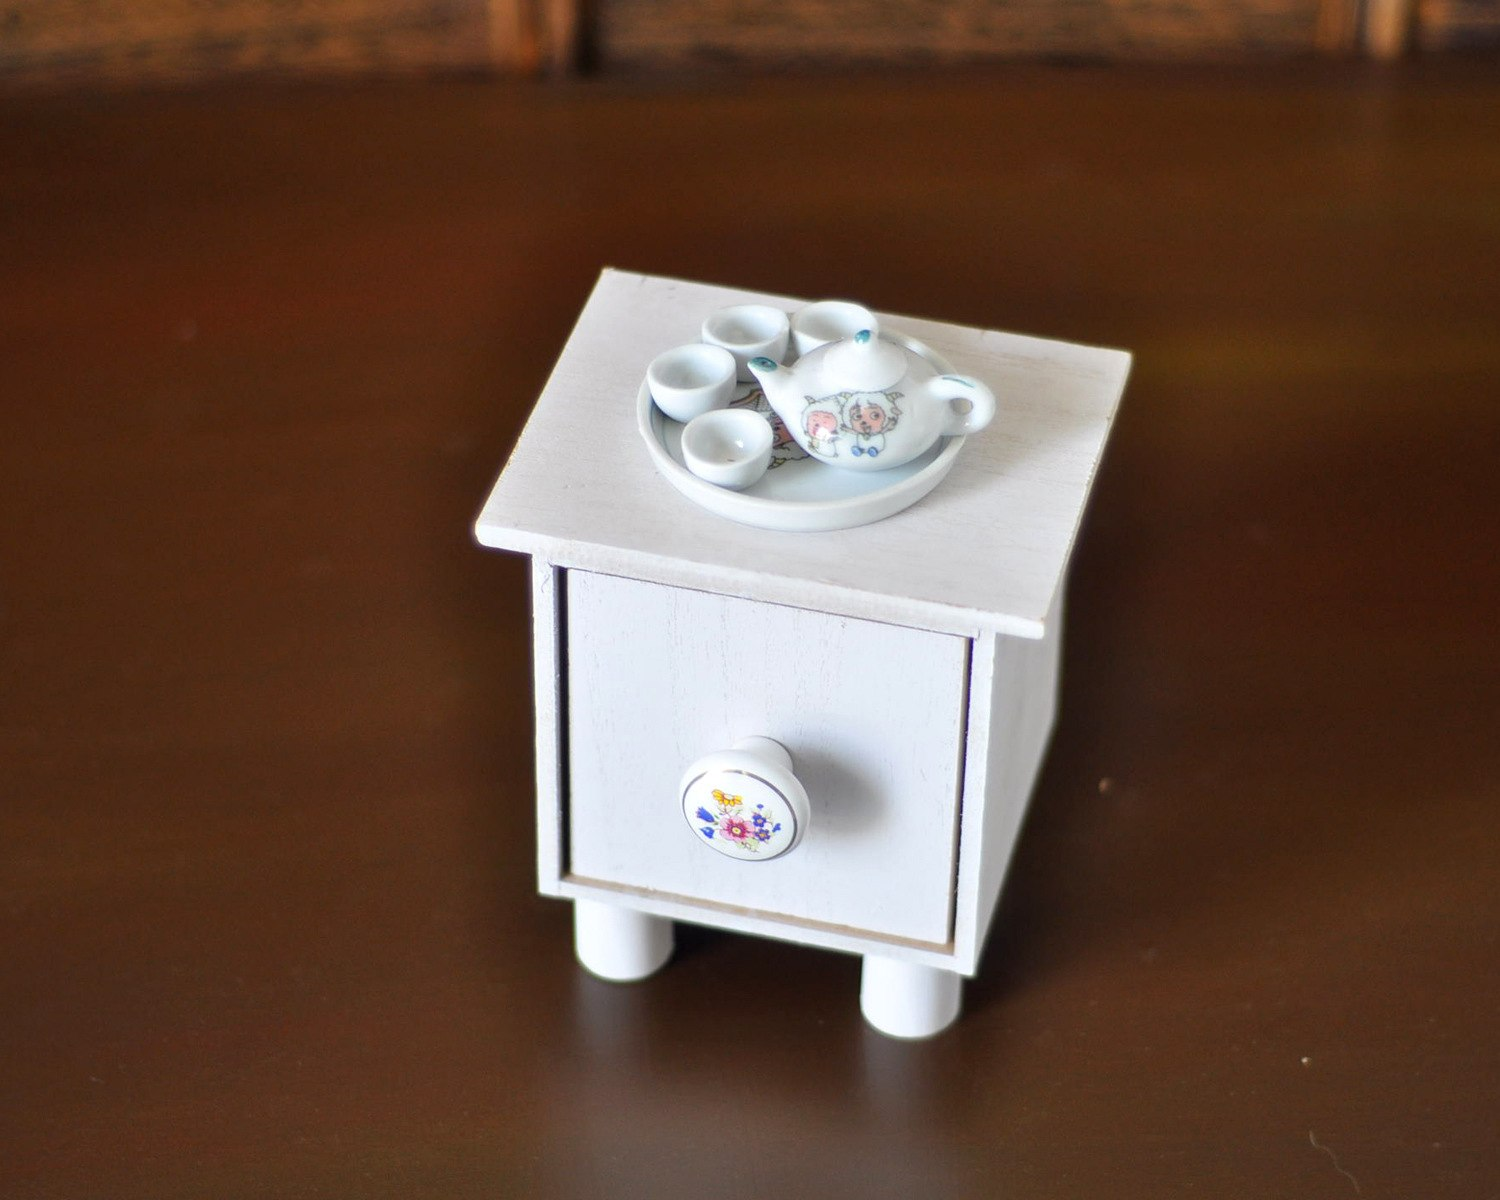 small tea table+ teapot +teacup newborn photography  props infantile lovely shooting  prop baby creative shooting accessory